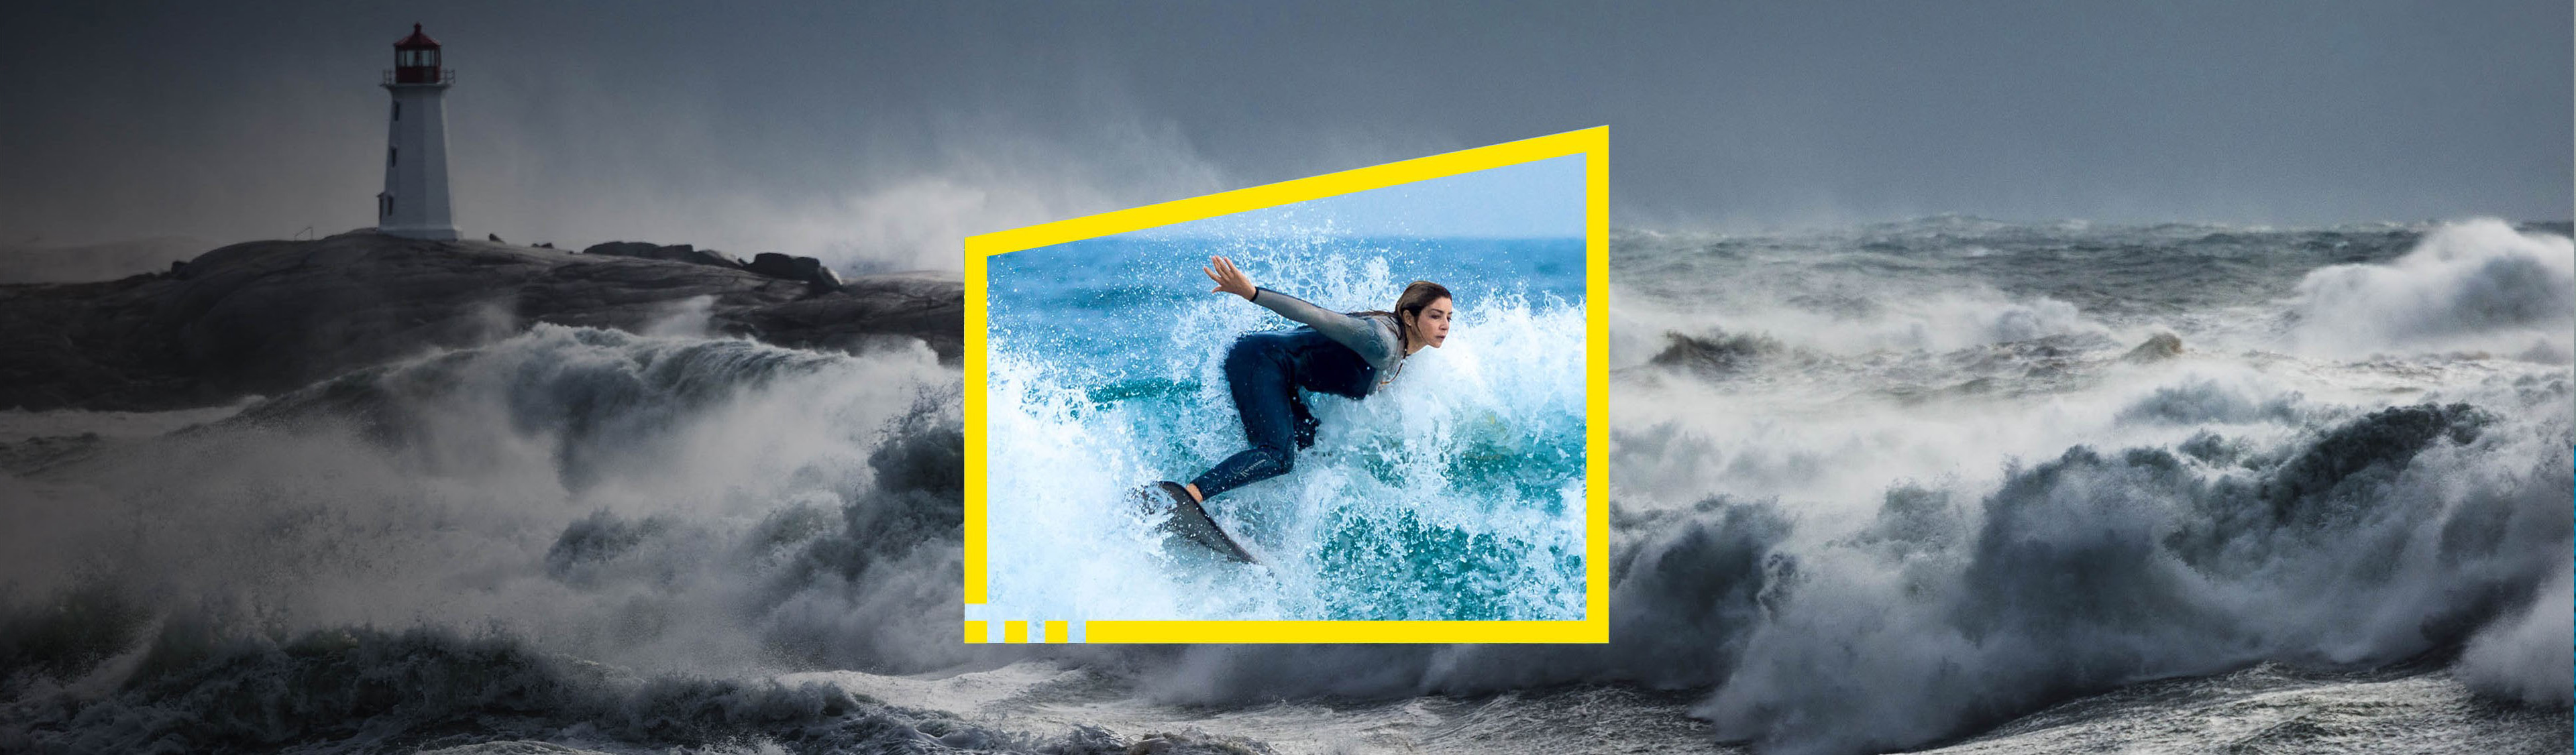 Reframe your future surfer storm